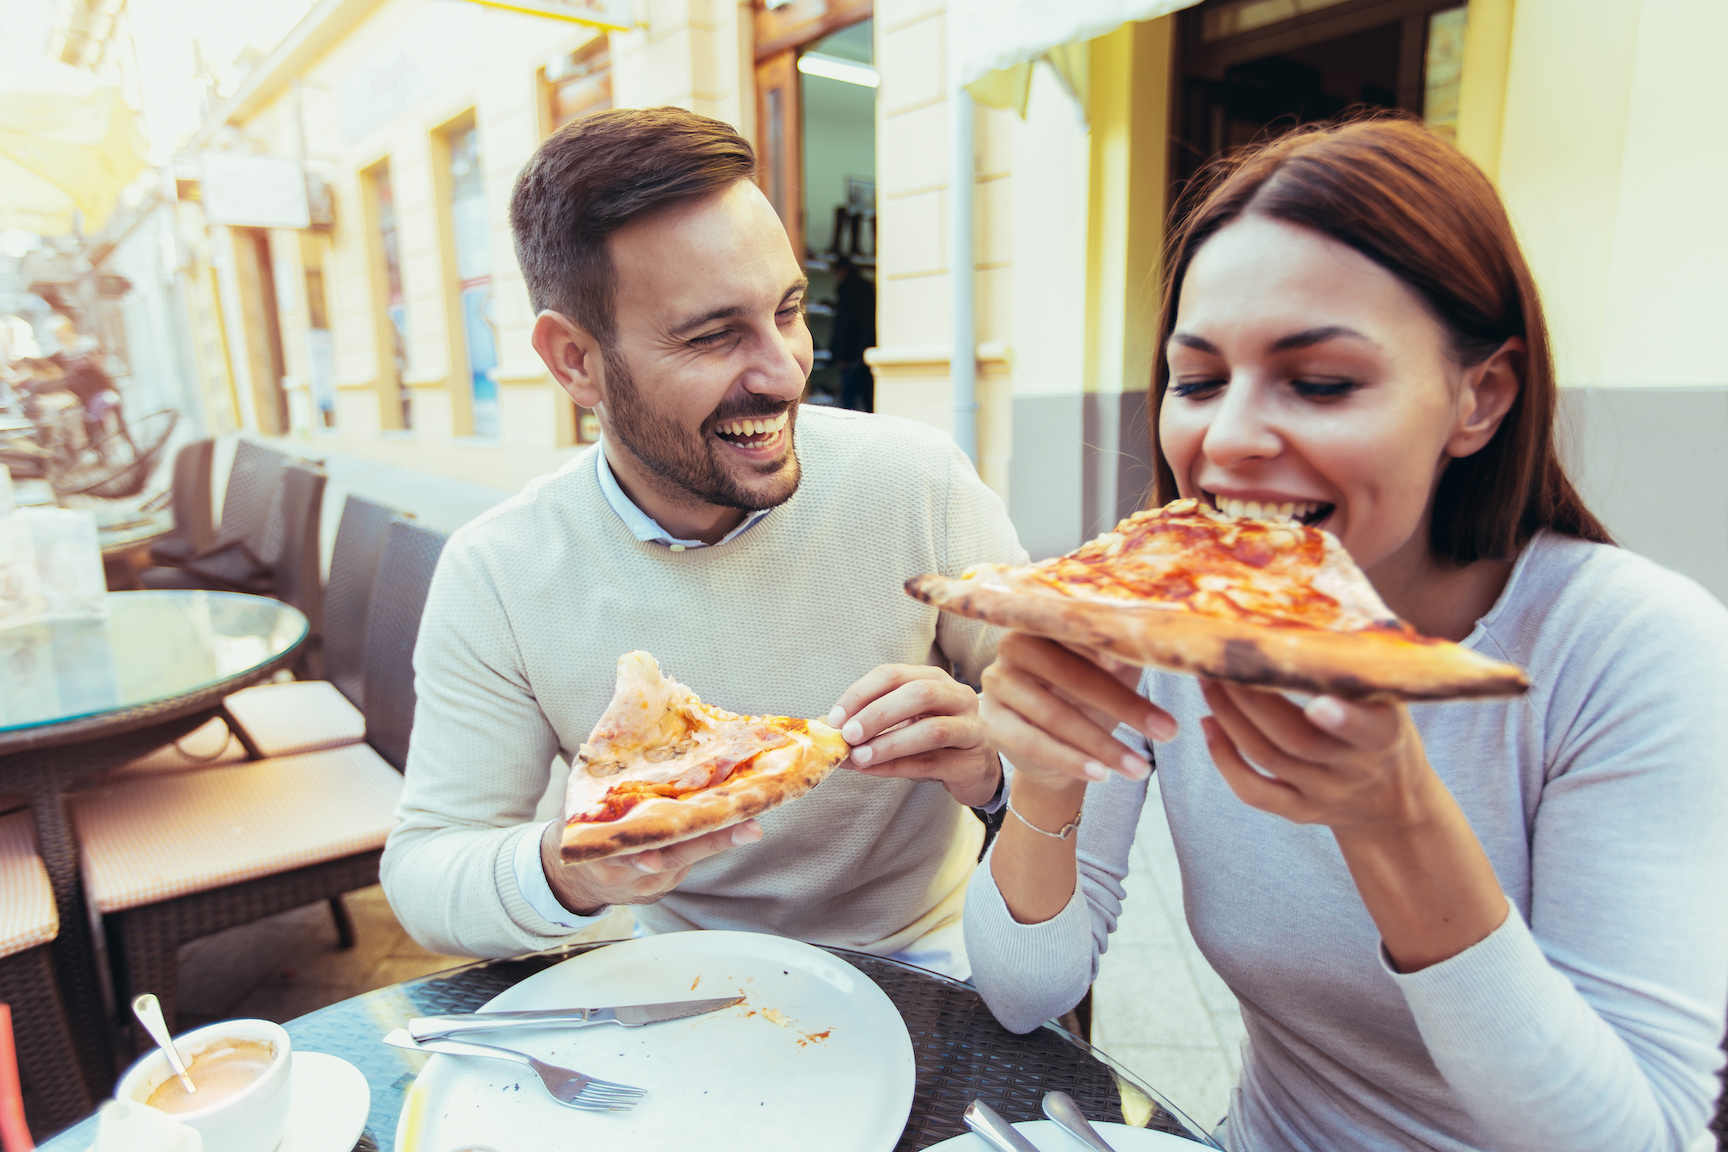 Research shows that a slower rate of eating lowers the risk of obesity and metabolic syndrome, and many other dangerous health risk factors.